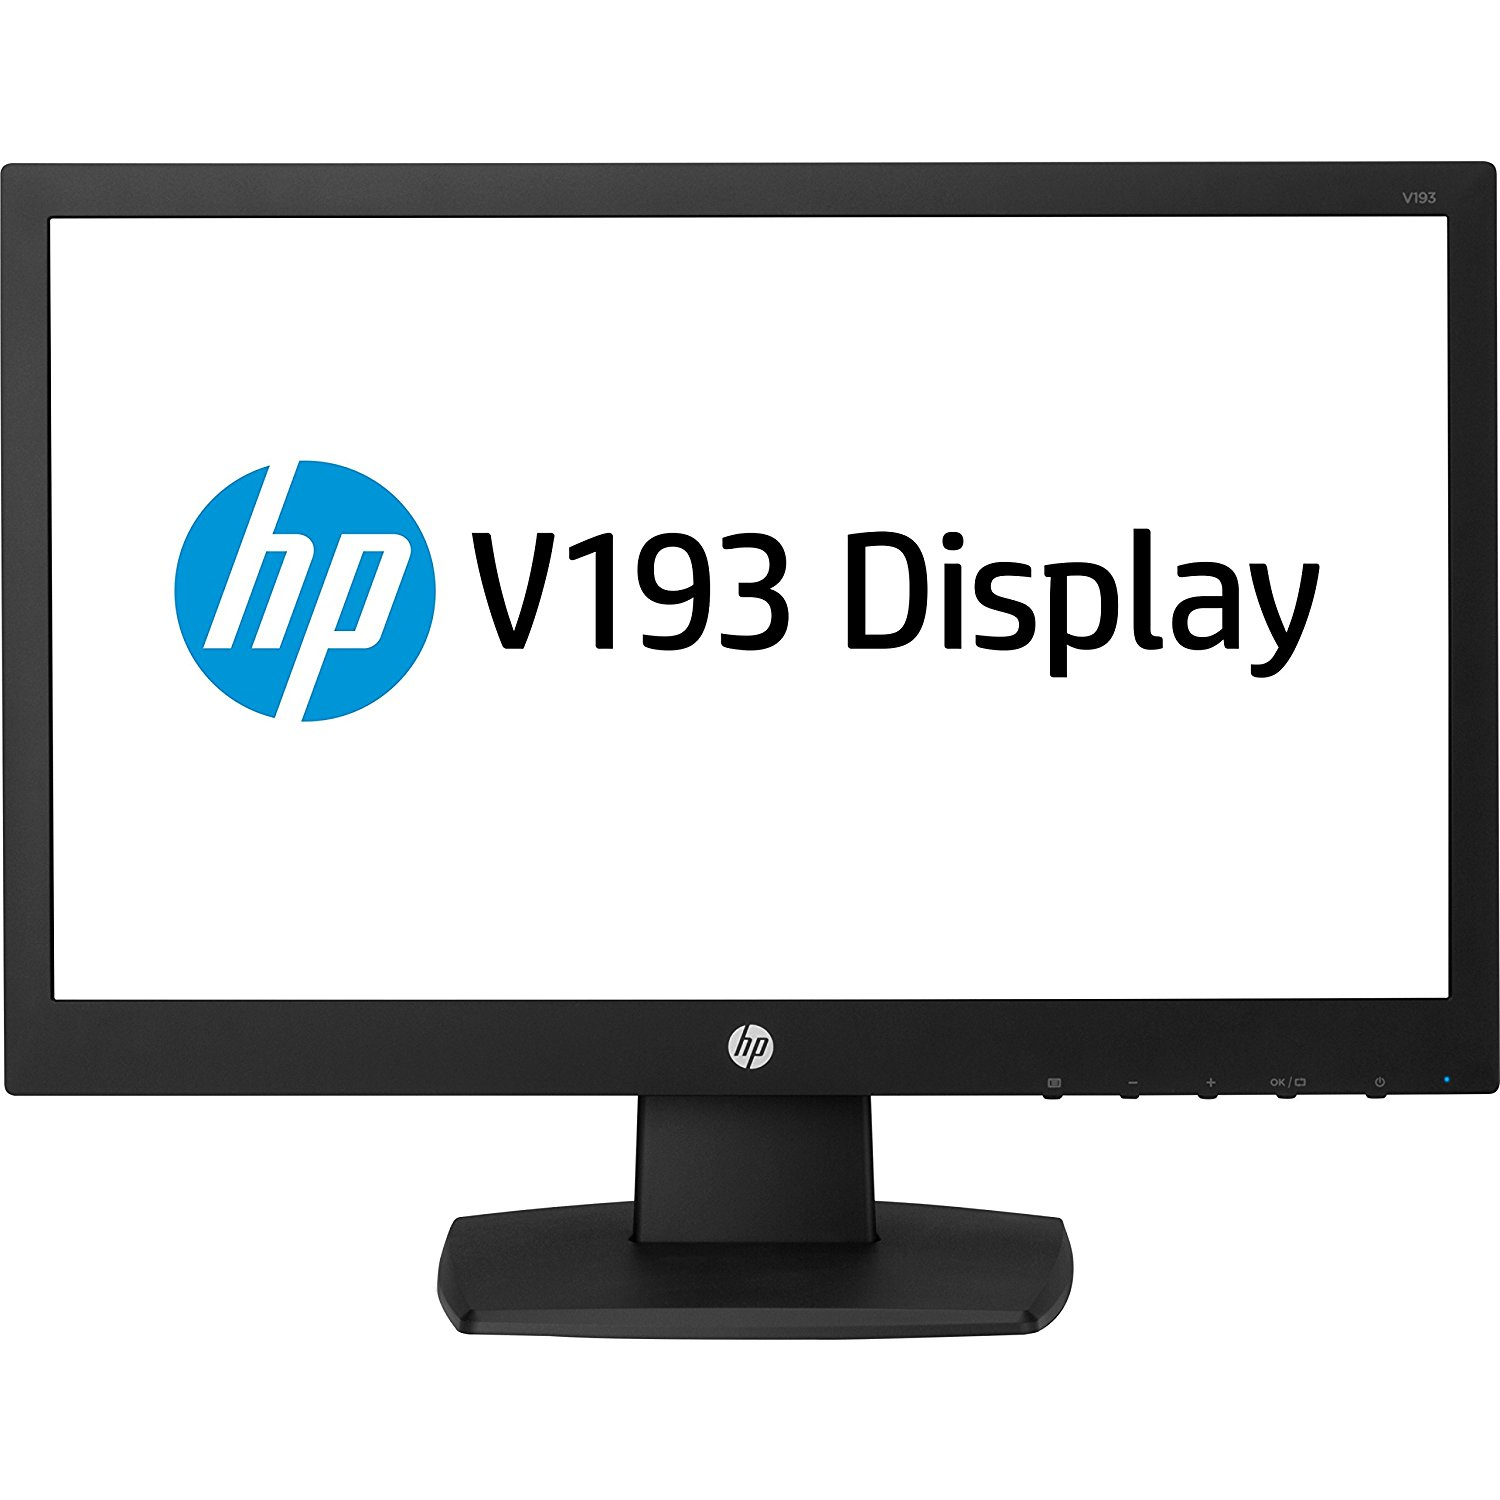 "HP V193b 18.5"" LED Backlit Monitor"